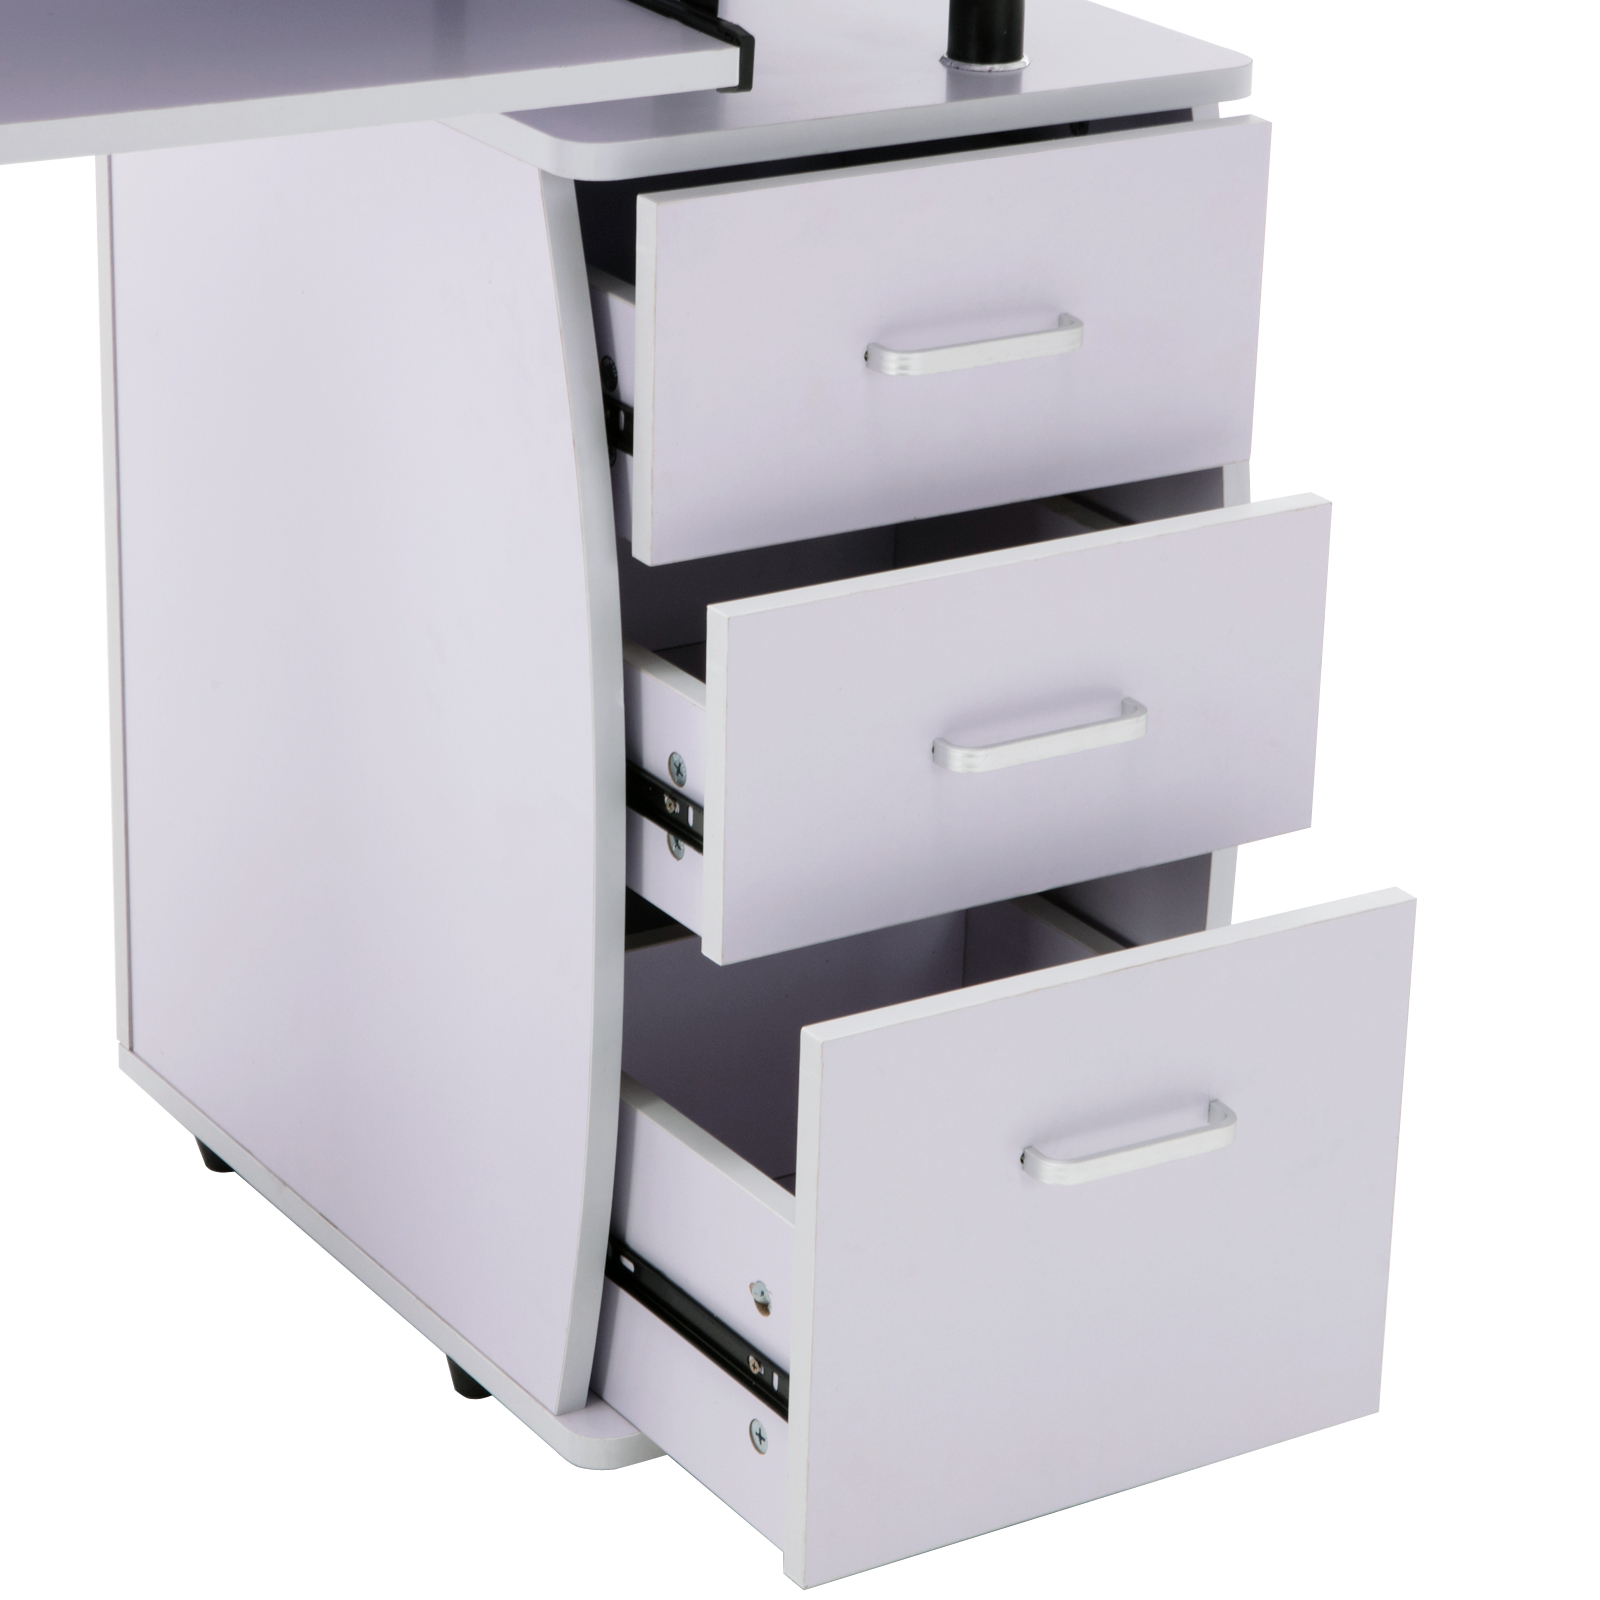 #625B70 Details About White Computer Desk W/3 Drawers Home Office PC Table  with 1600x1600 px of Brand New White Office Desk With Drawers 16001600 pic @ avoidforclosure.info